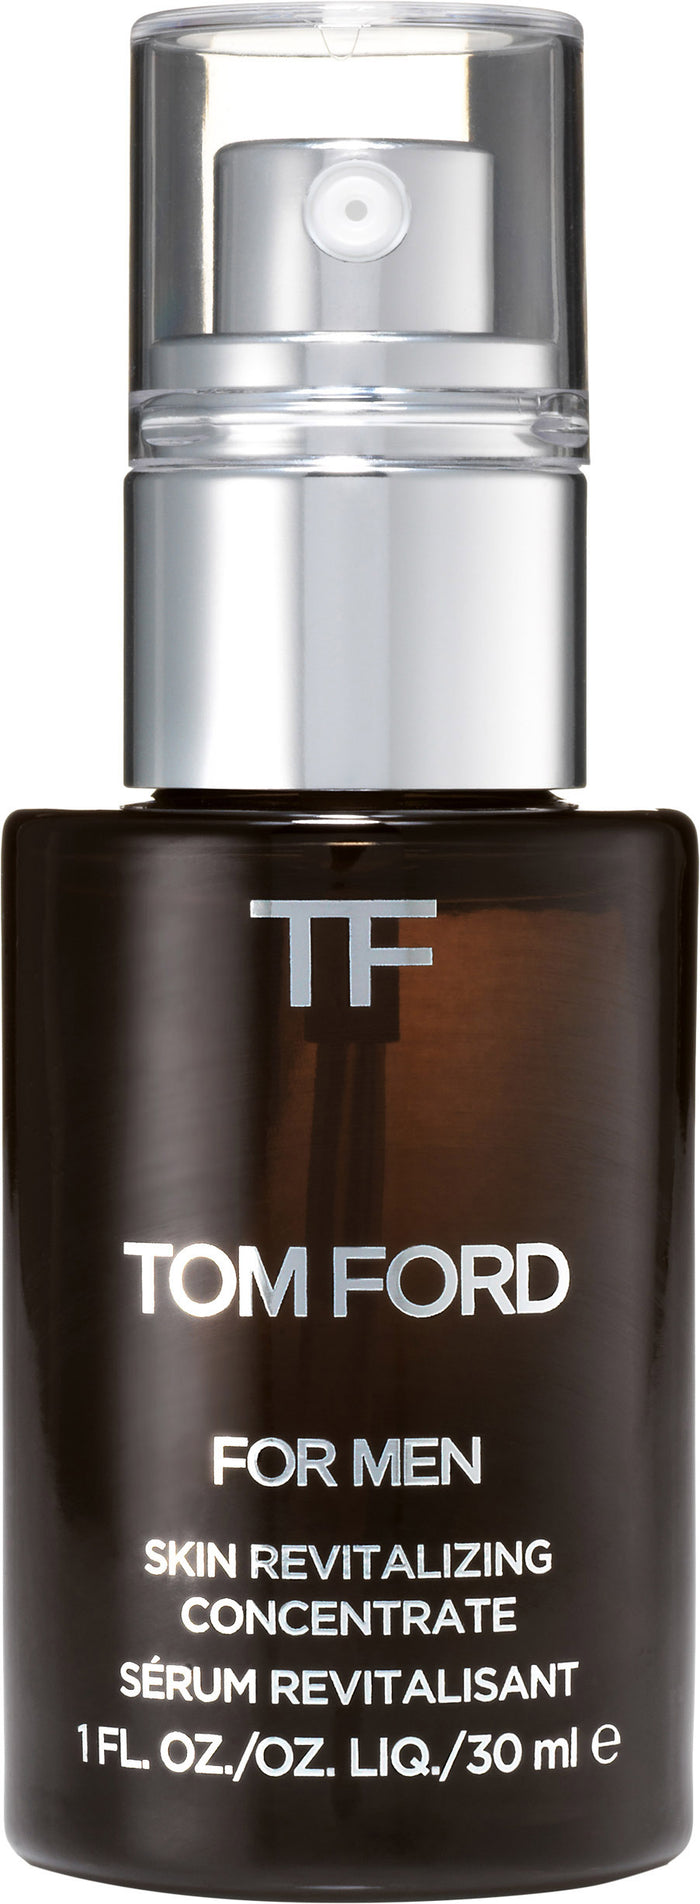 Tom Ford Skin Revitalizing Concentrate 30 ml